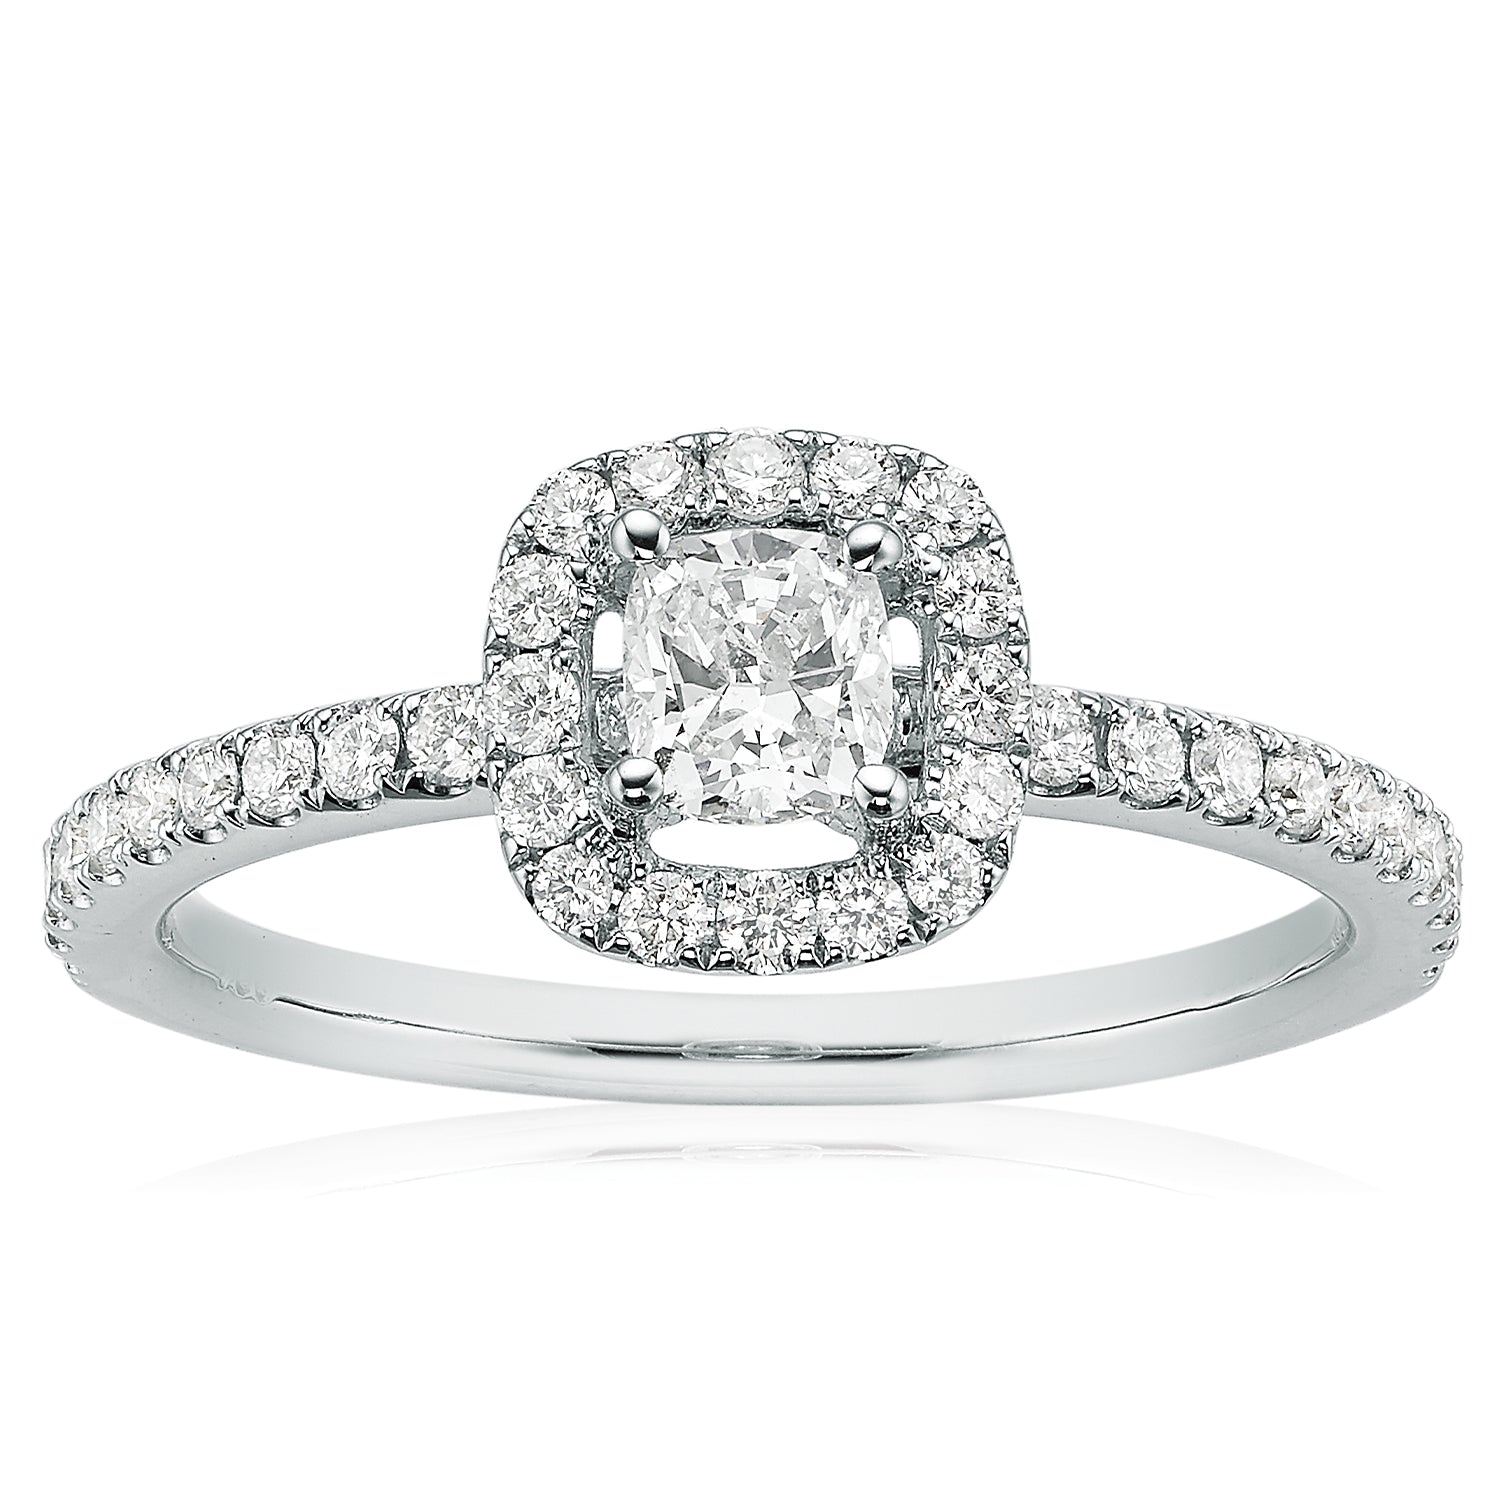 Rand 18ct White Gold Cushion Cut with 0.65 CARAT tw of Diamonds